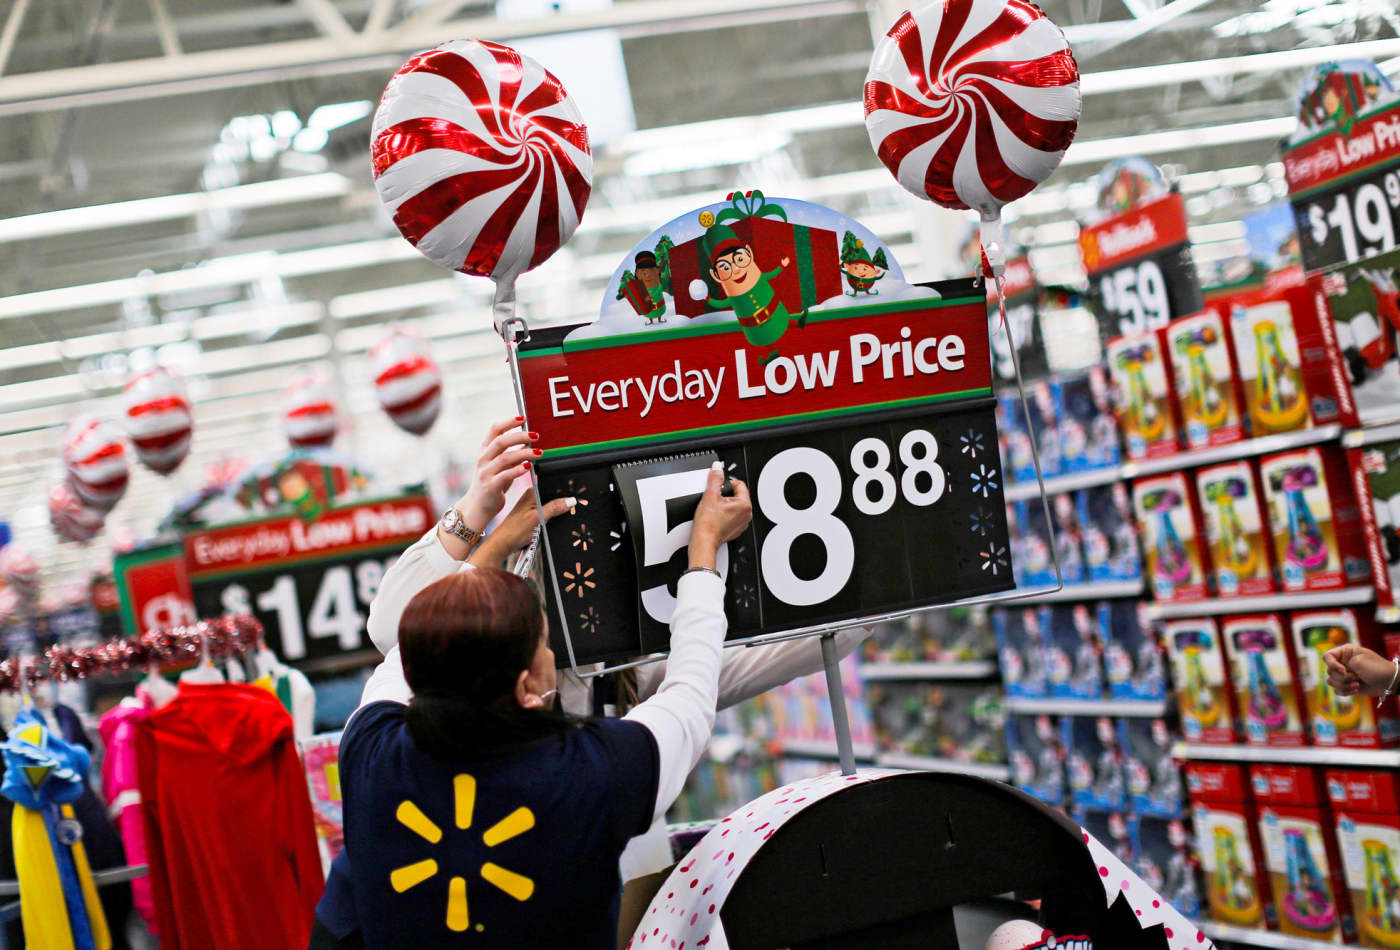 Walmart earnings and outlook fall short as holiday season disappoints